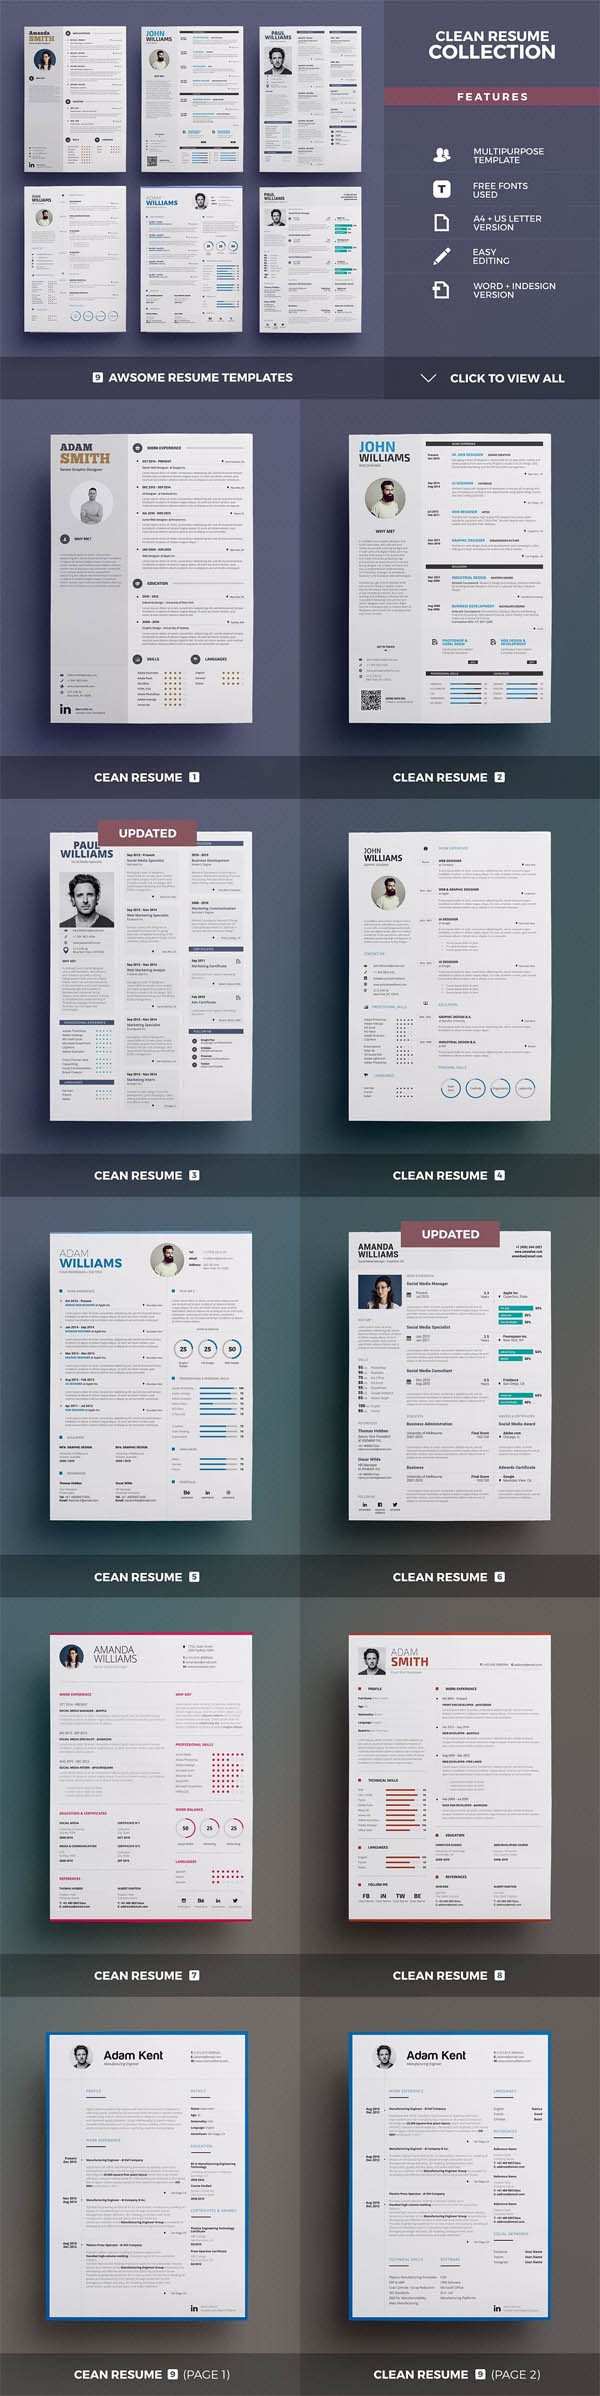 All-in-One Resume Bundle - 3